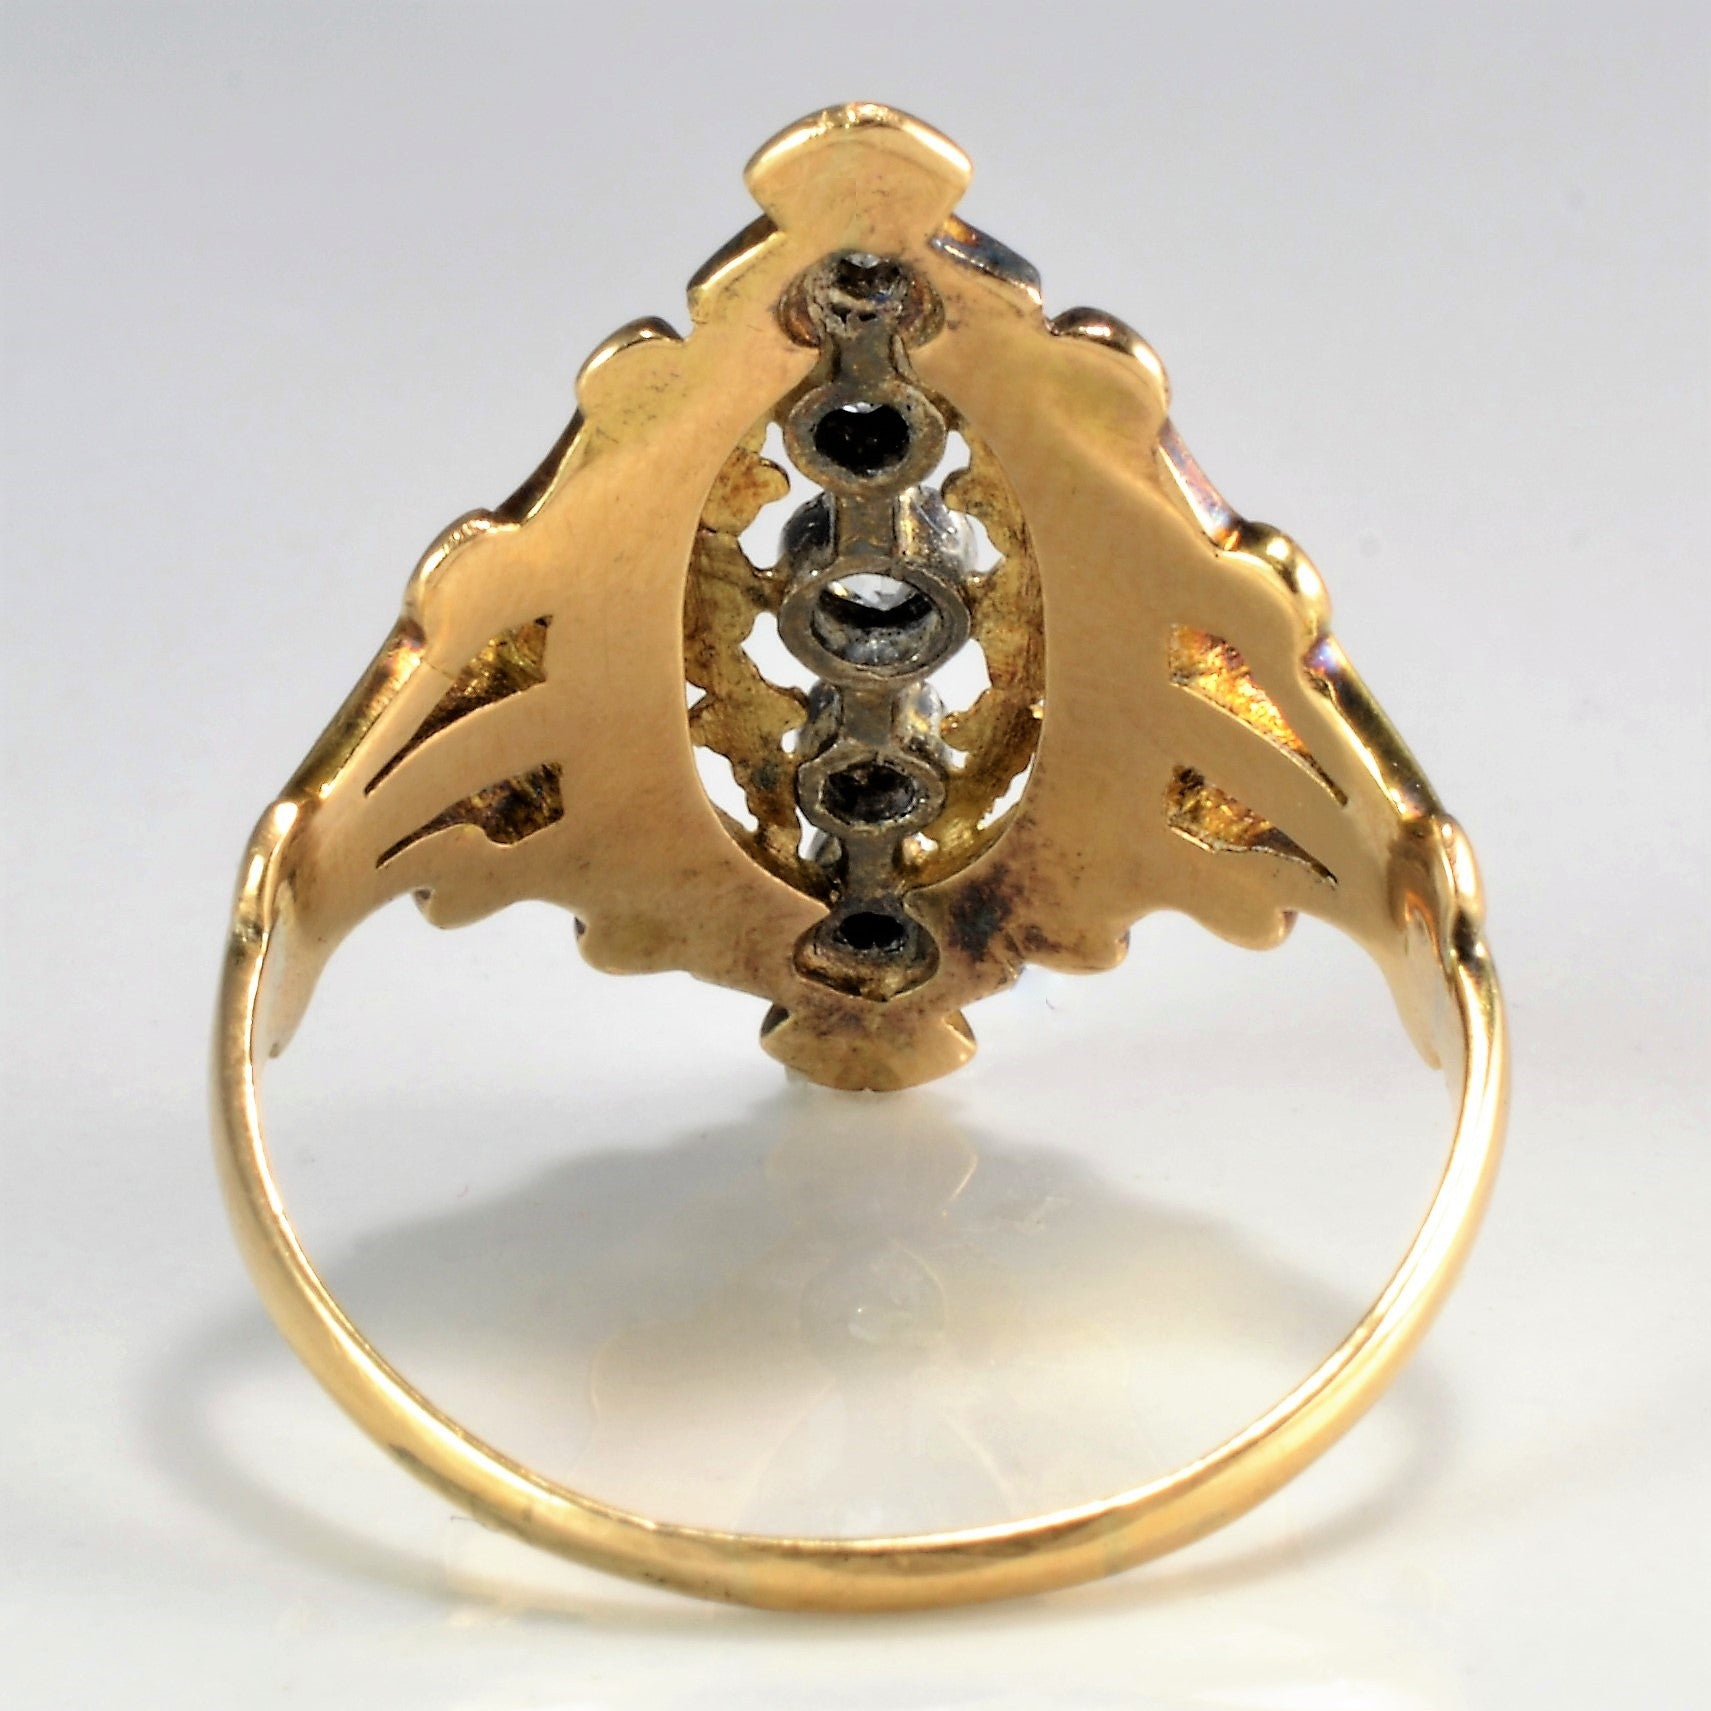 Vintage Marquise Shape Diamond Engagement Ring | 0.20 ctw, SZ 8.75 |